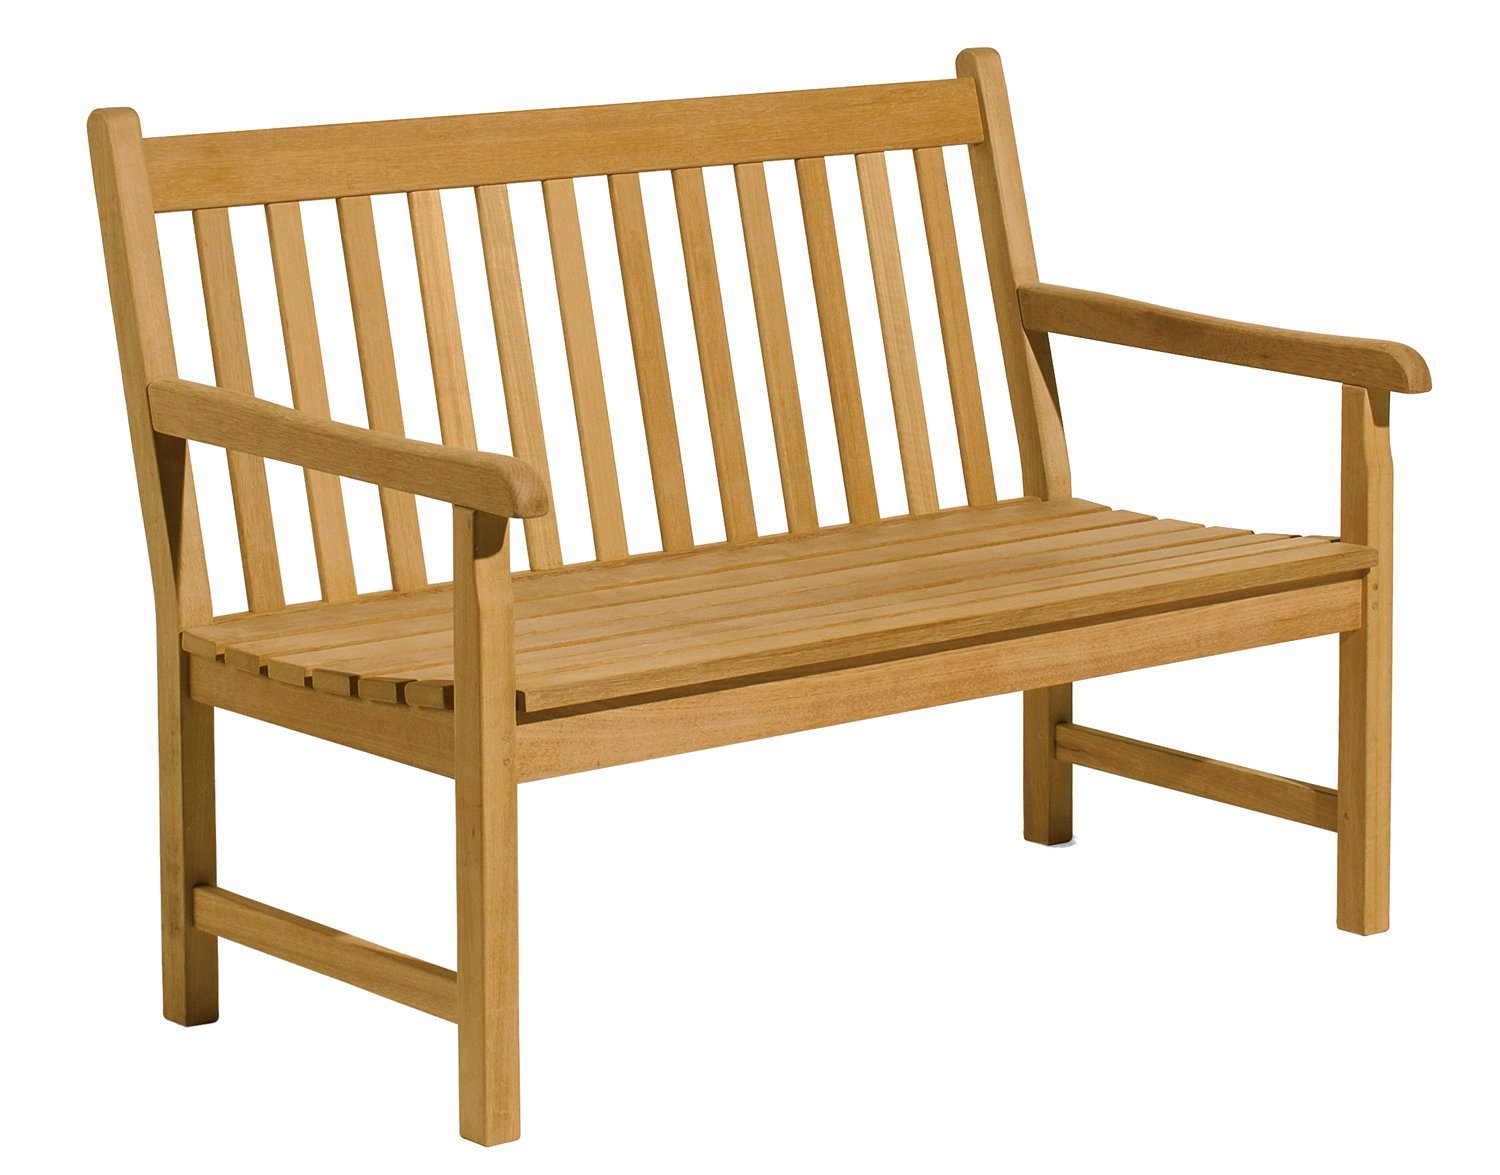 Garden Bench Australia What Are The Best Teak Wood Alternatives For Outdoor Furniture